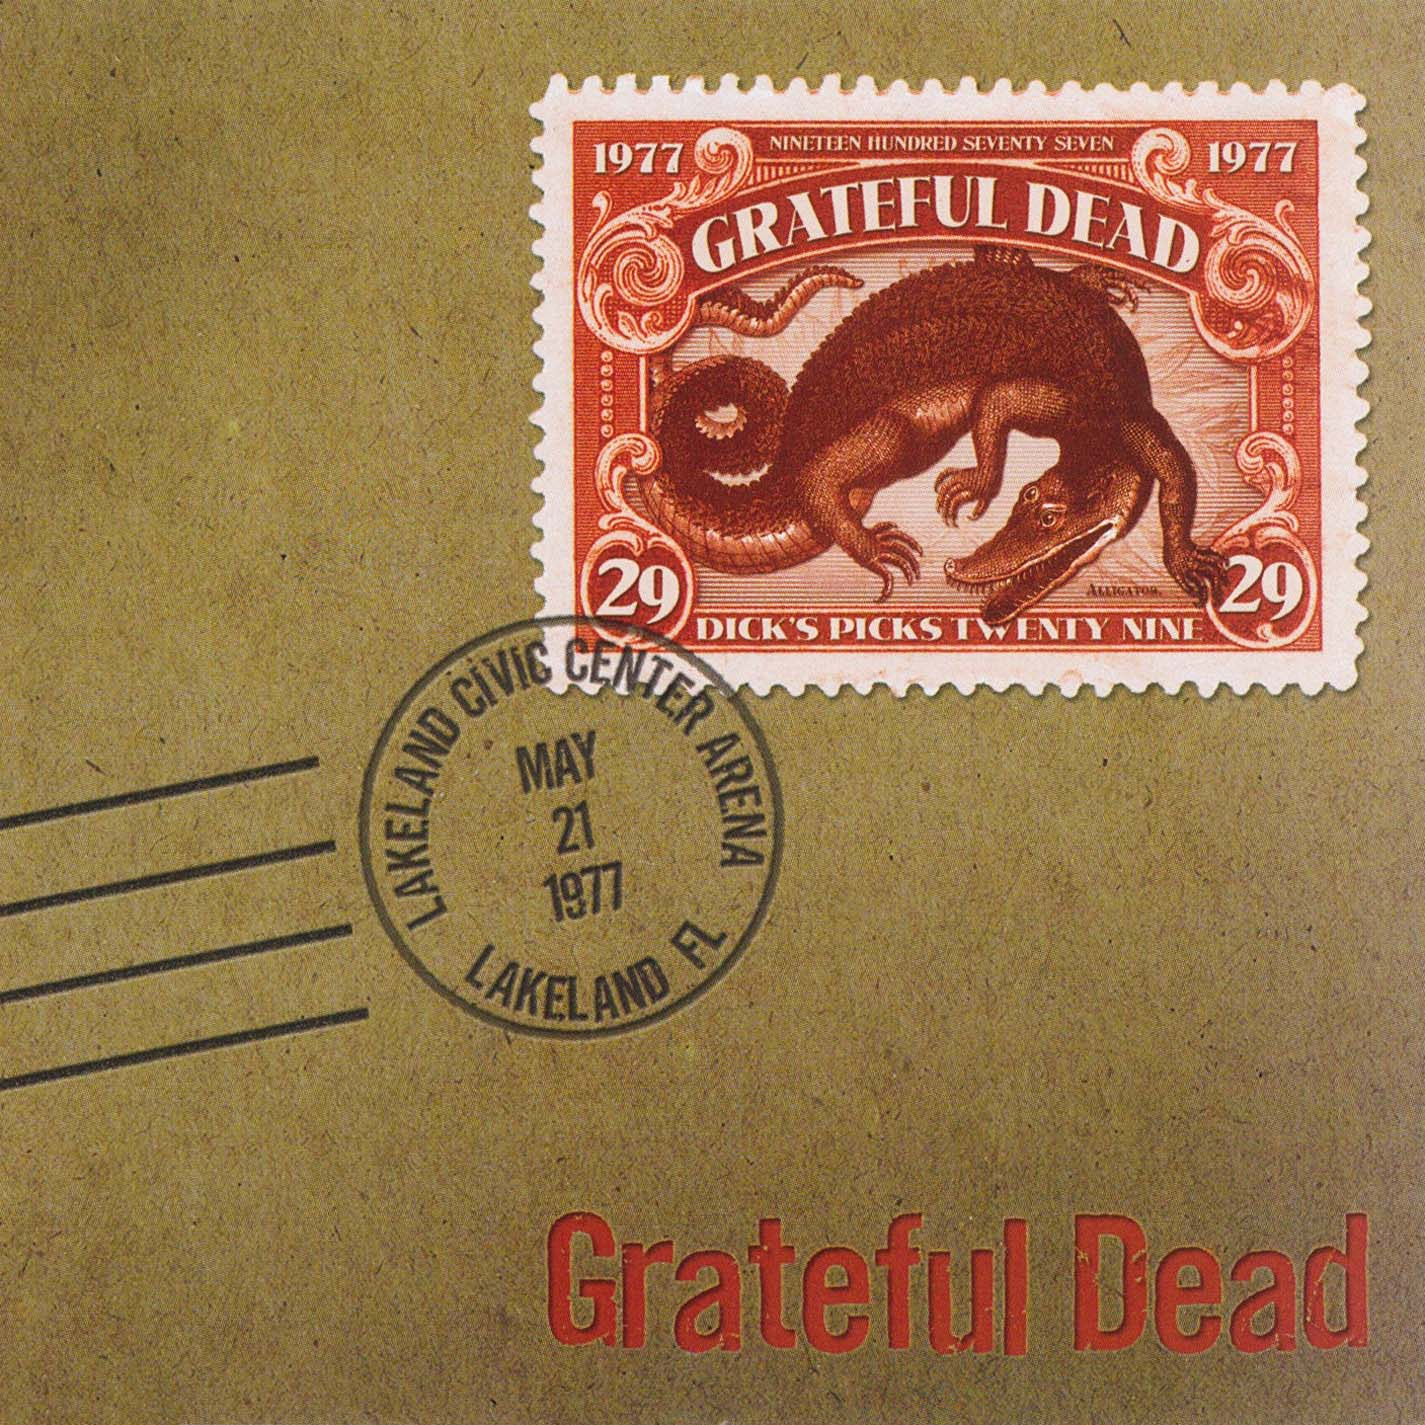 Grateful Dead Dick's Picks 29 album cover artwork